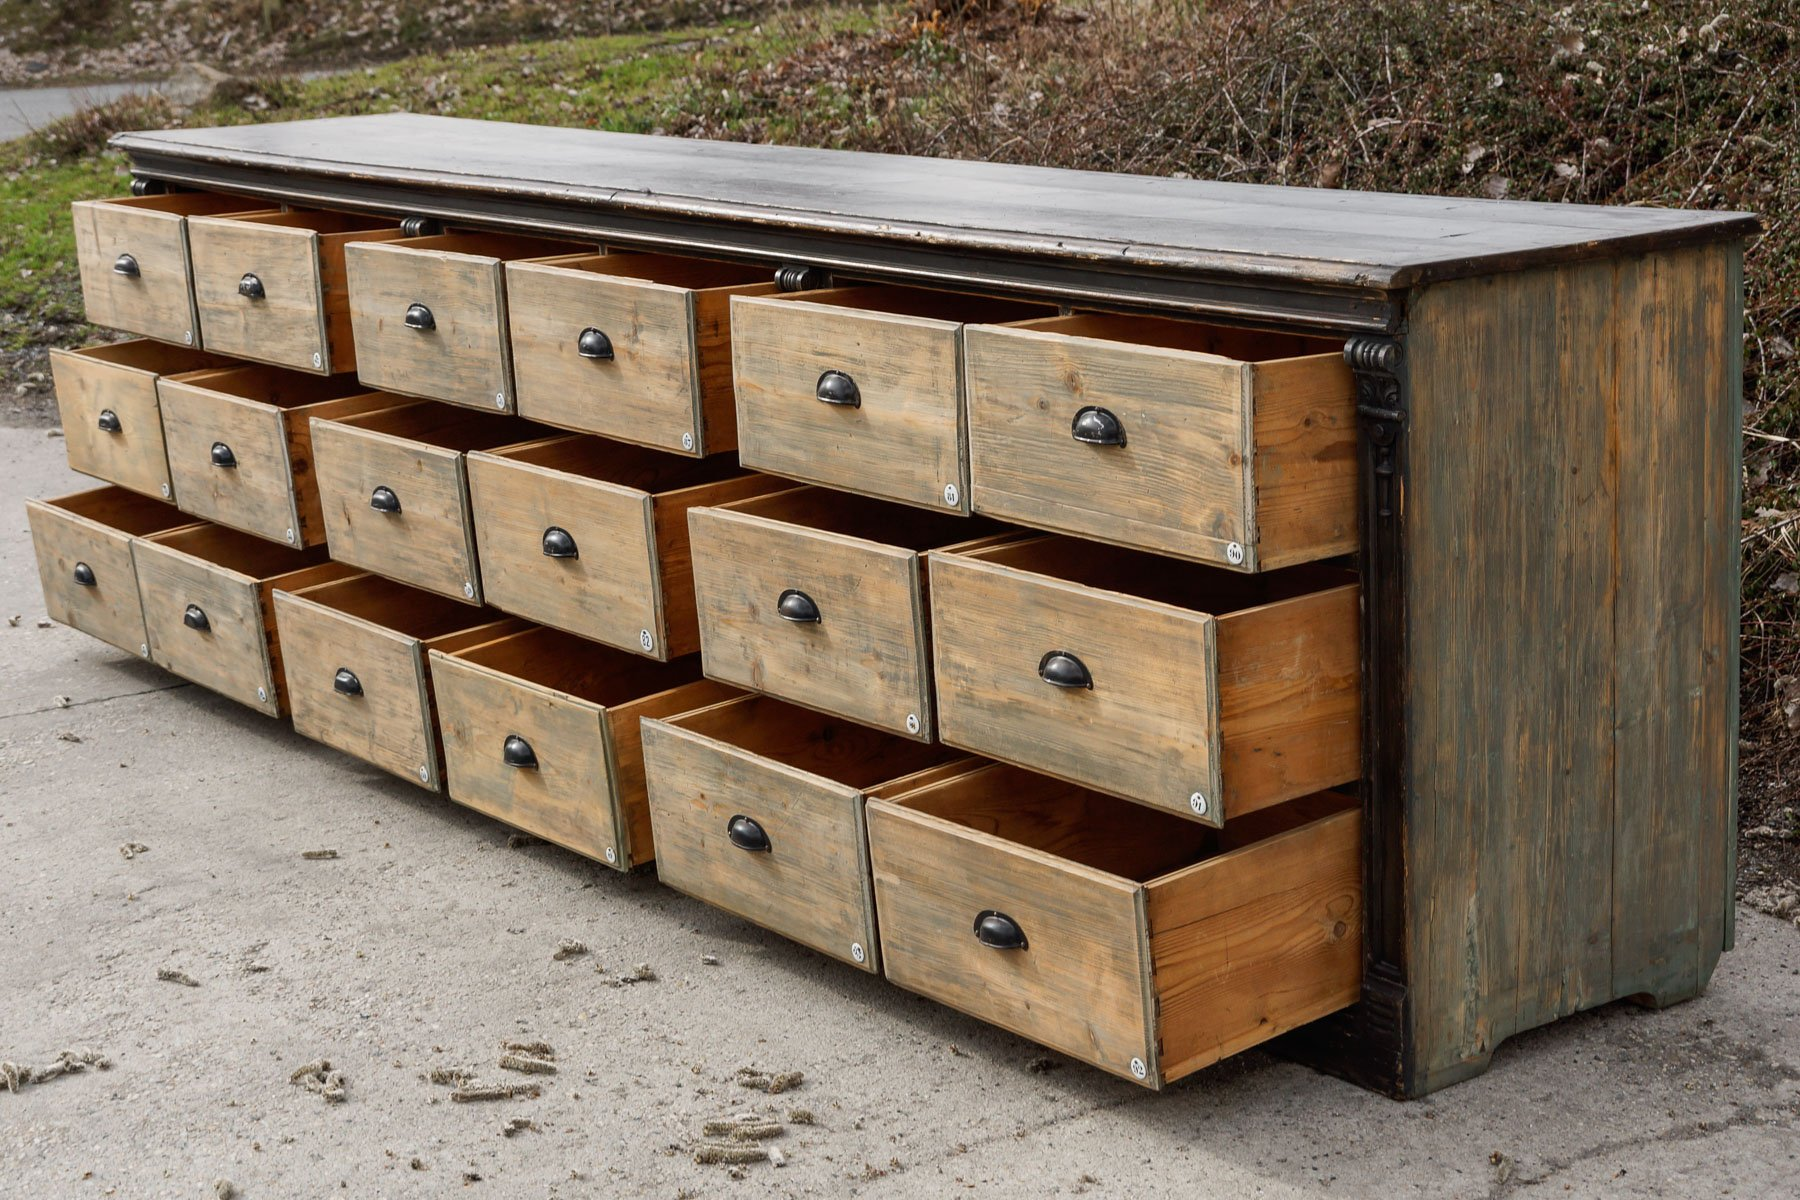 Wooden Chest Of Drawers: Large Antique Wooden Chest Of Drawers, 1890s For Sale At